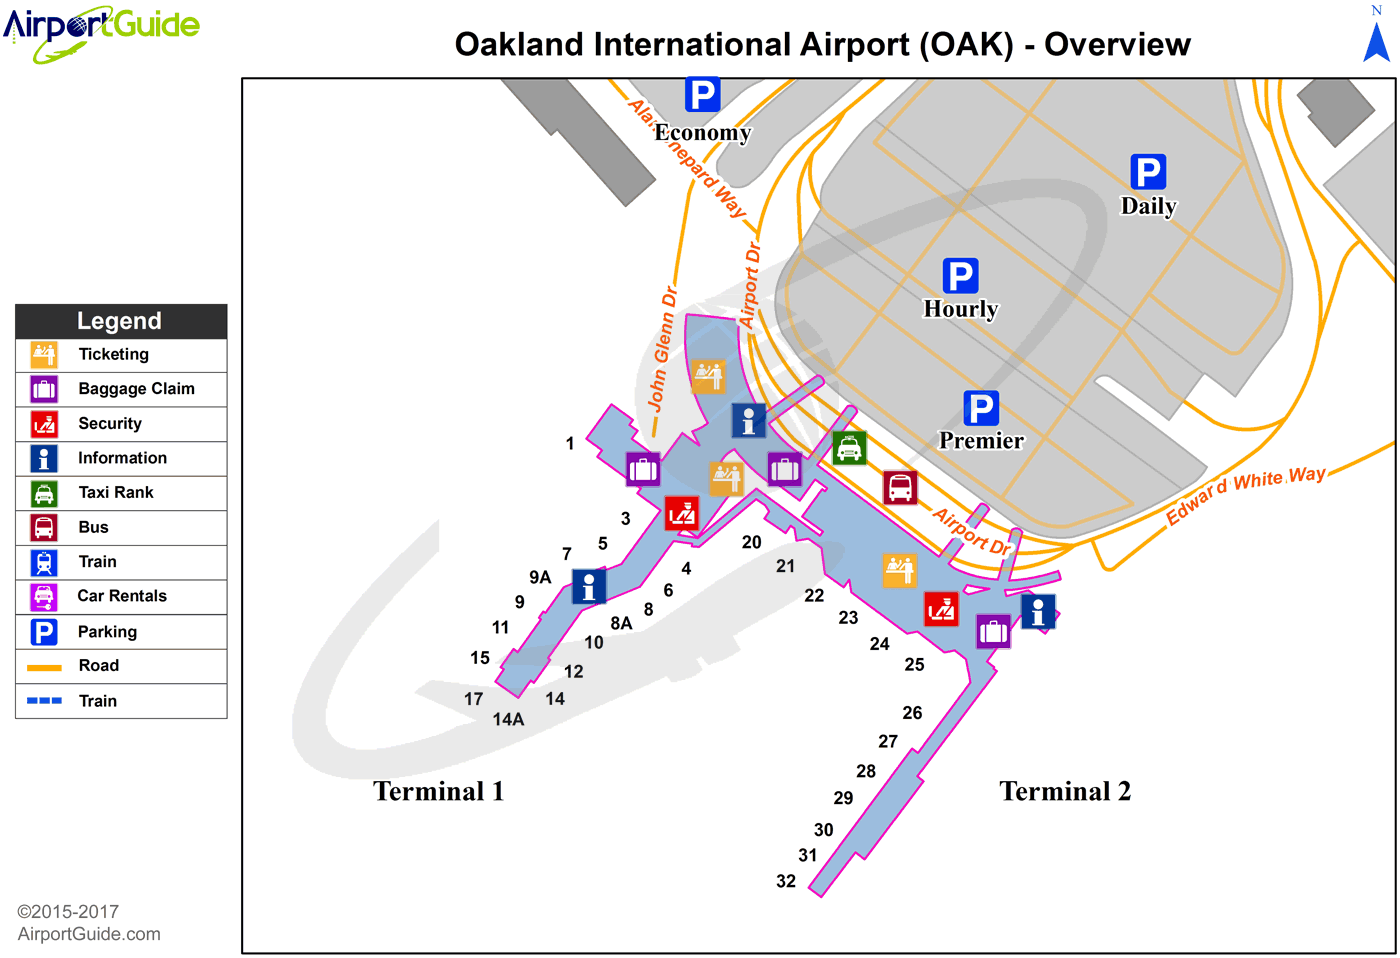 Oakland - Metropolitan Oakland International (OAK) Airport Terminal Map - Overview